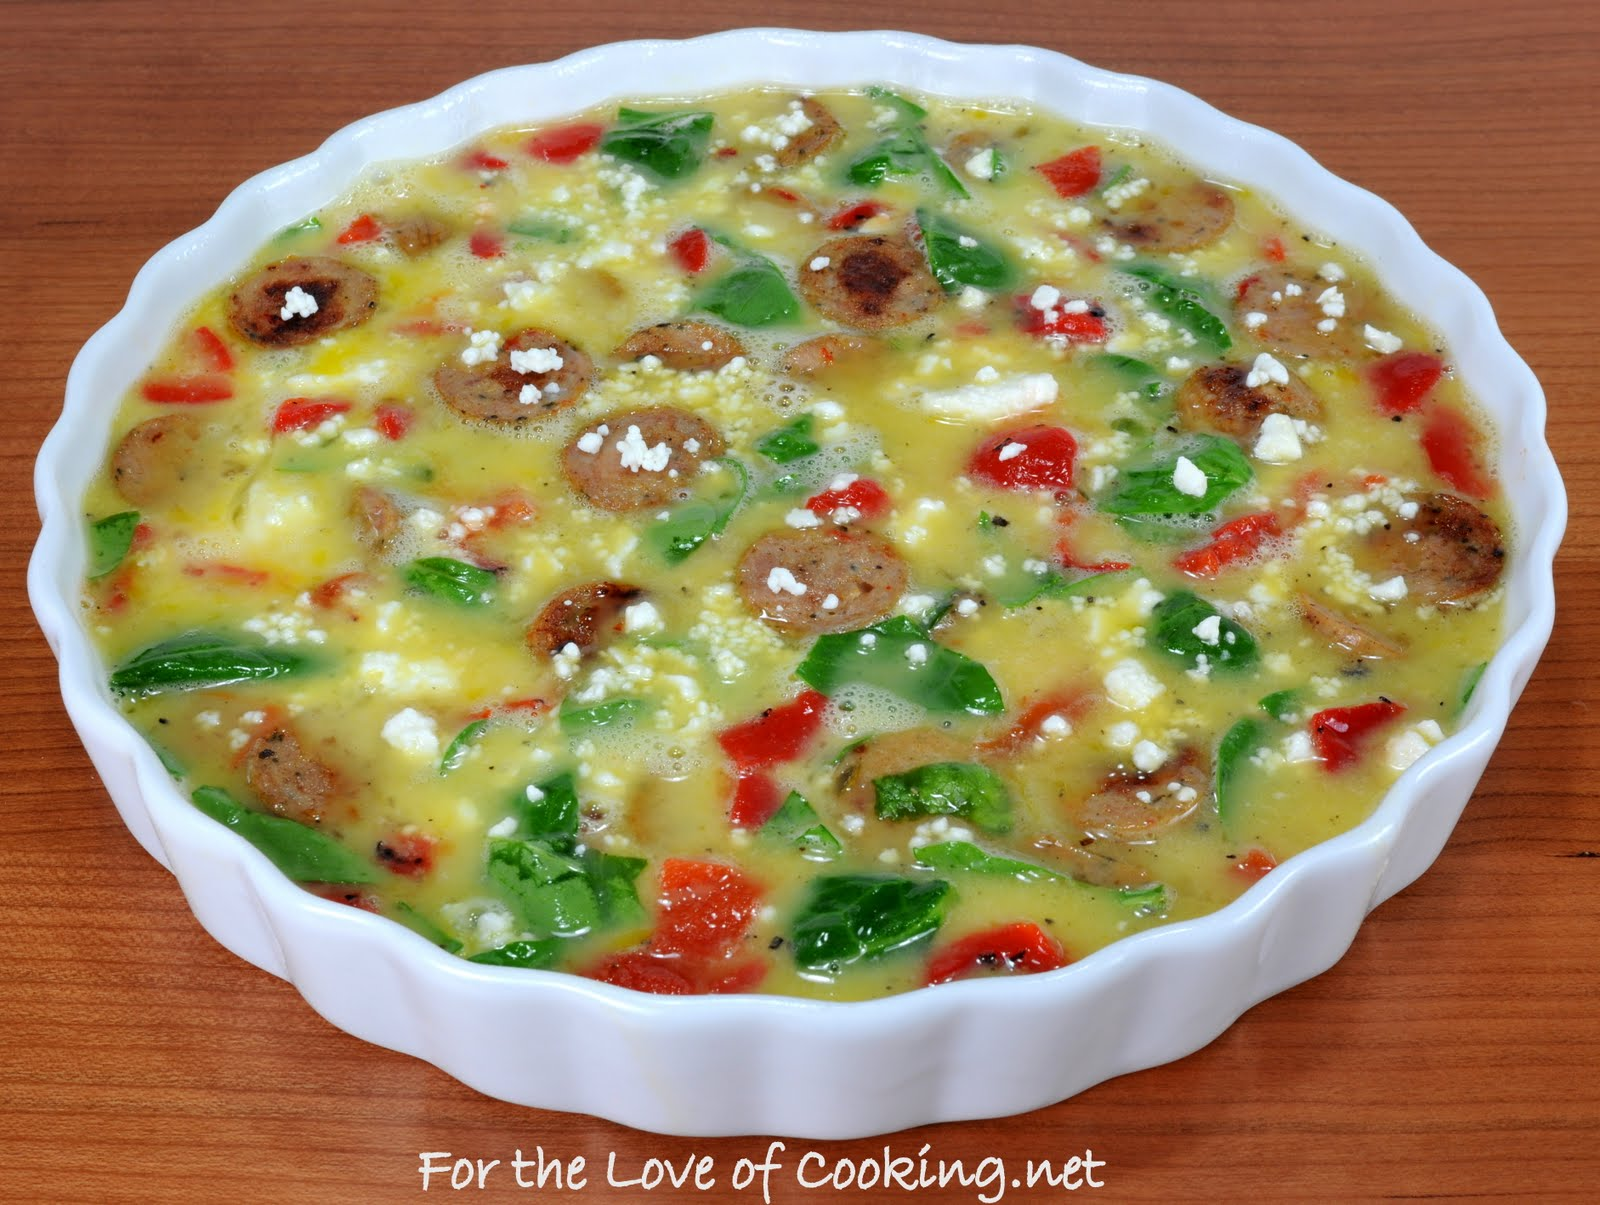 with Jalapeno Chicken Sausage, Spinach, Roasted Bell Peppers, and Feta ...